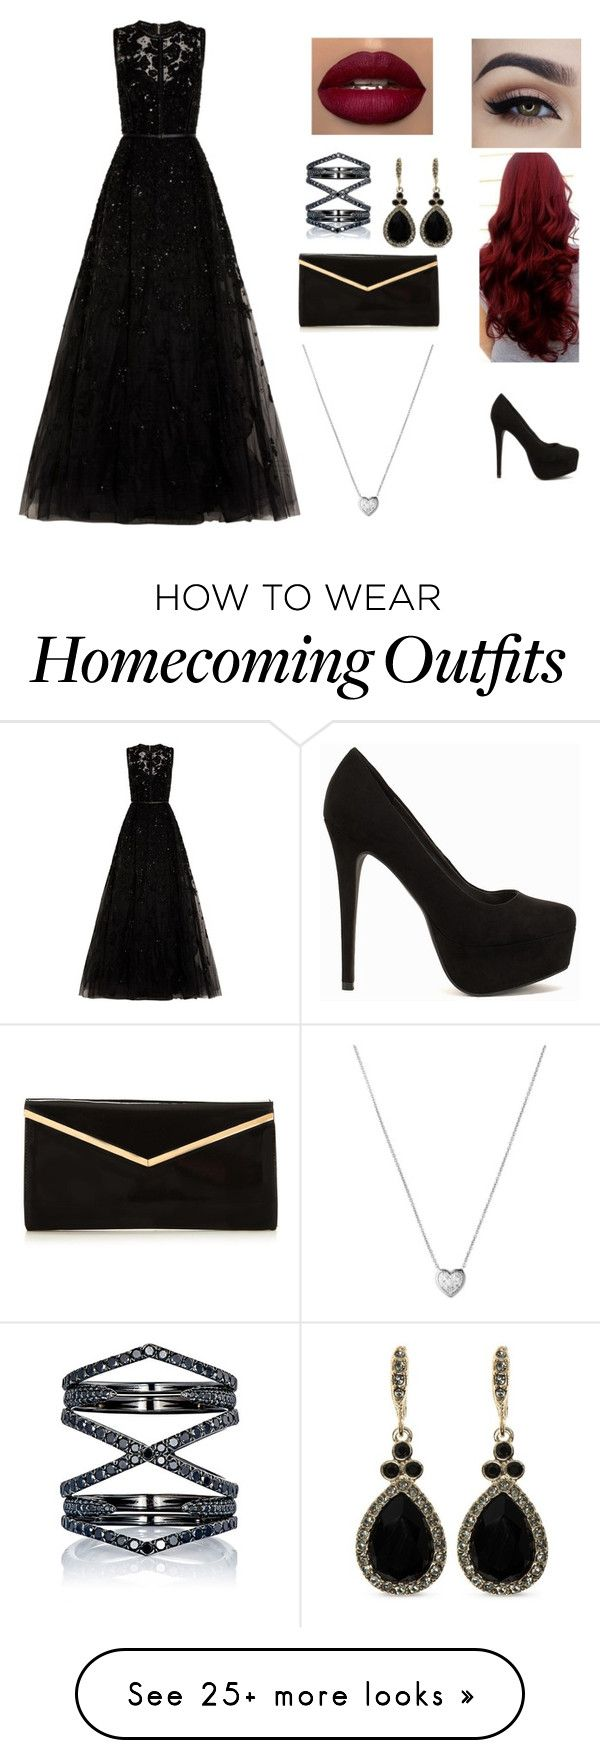 """""""Homecoming Queen"""" by xxxkilljoyxxx on Polyvore featuring Elie Saab, Nly Shoes, Eva Fehren, Givenchy and Links of London"""